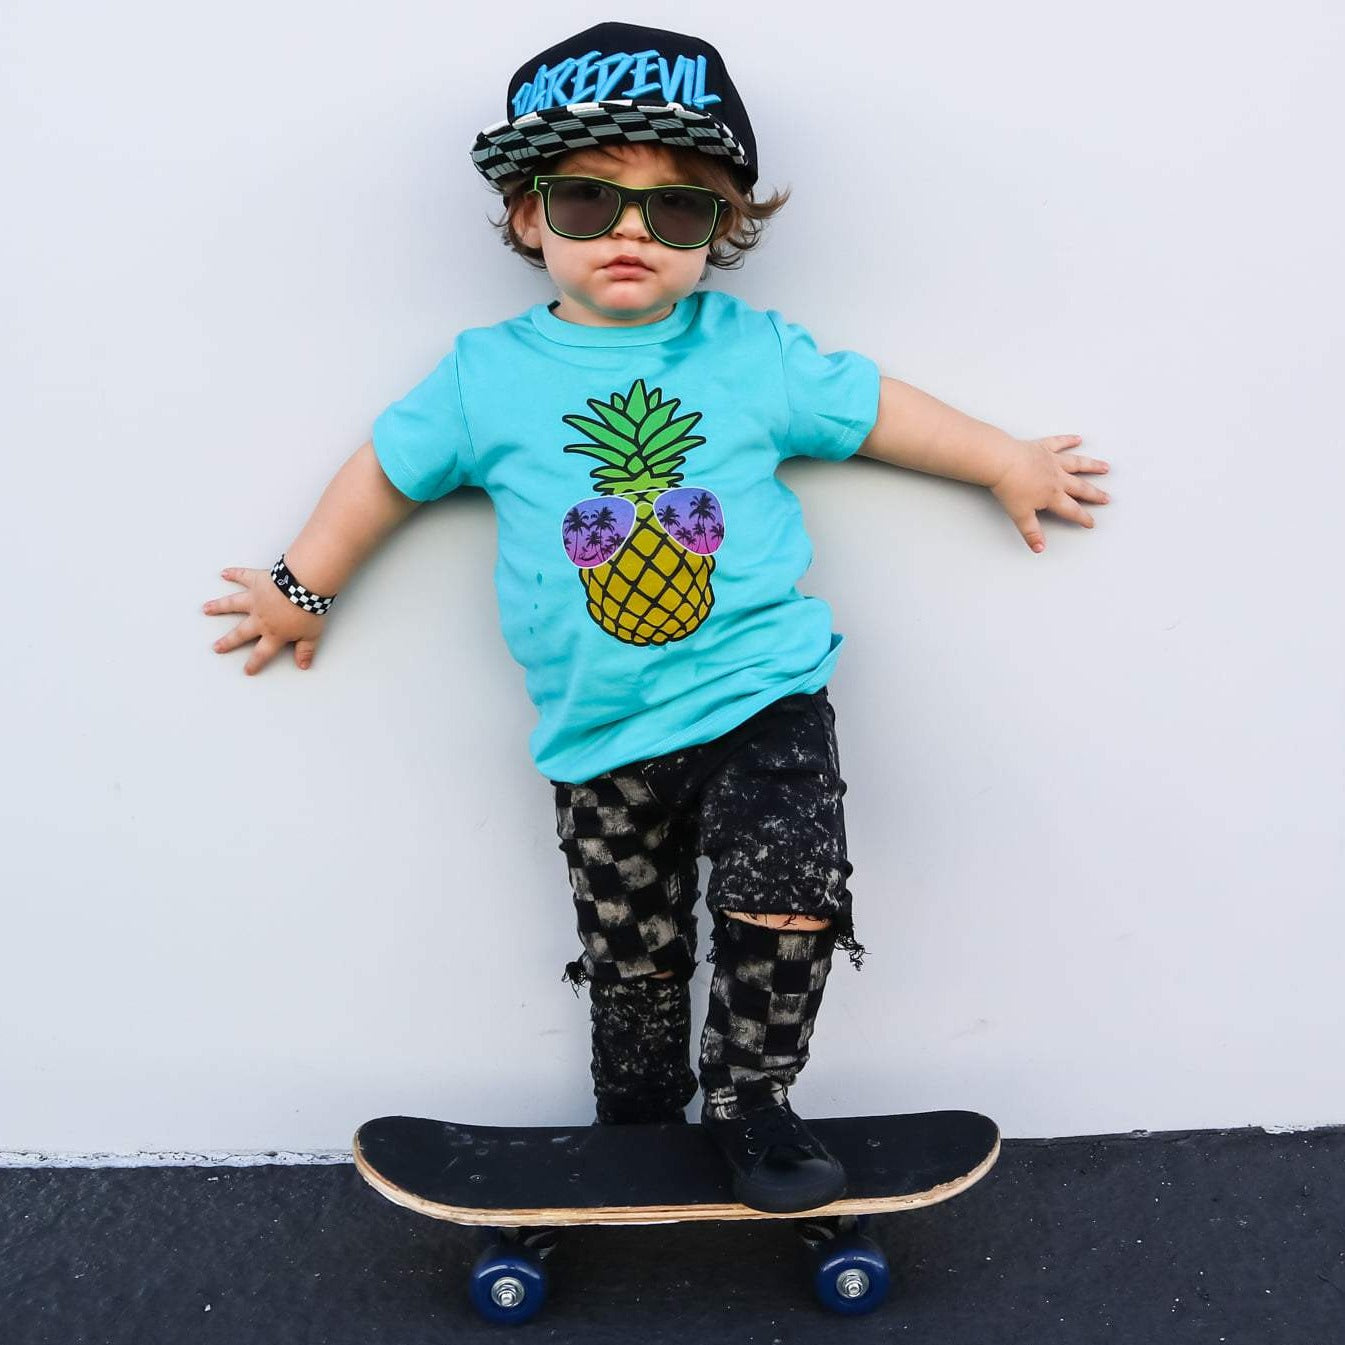 Boy graphic teal tee with pineapple sunglasses